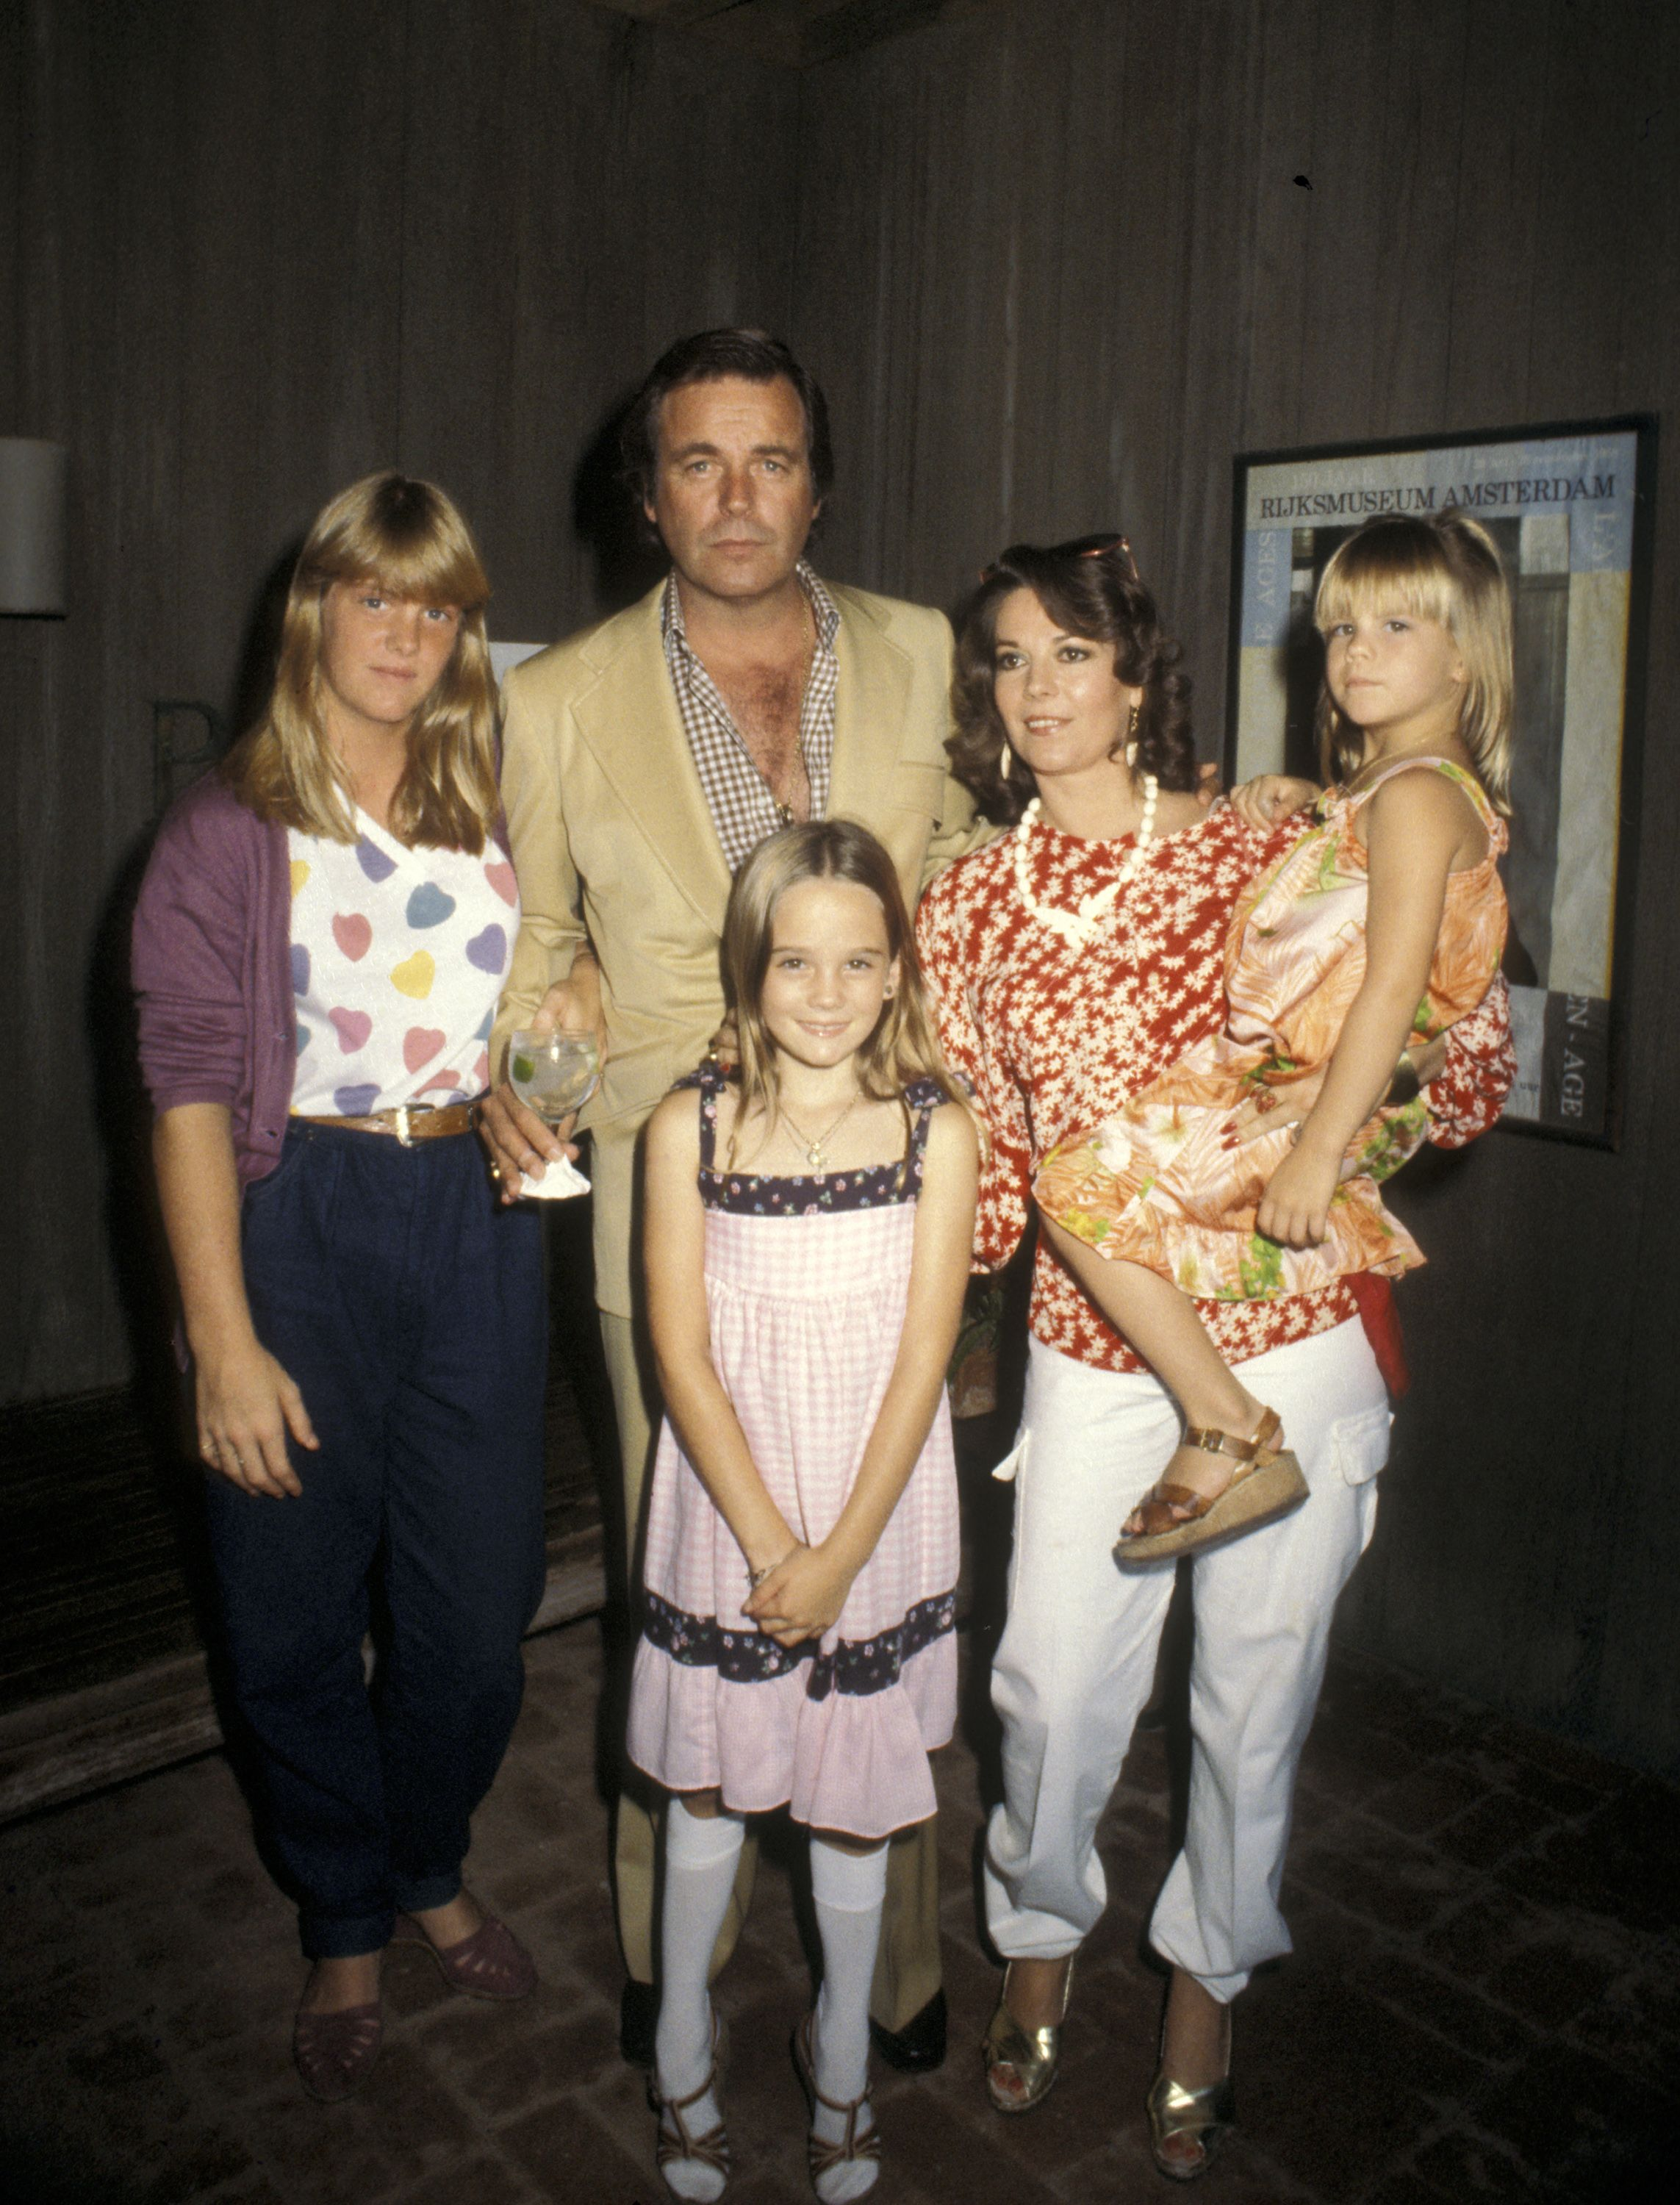 Robert Wagner, Natalie Wood, and Daughters Katie Wagner, Natasha Gregson Wagner, and Courtney Wagner. | Source: Getty Images